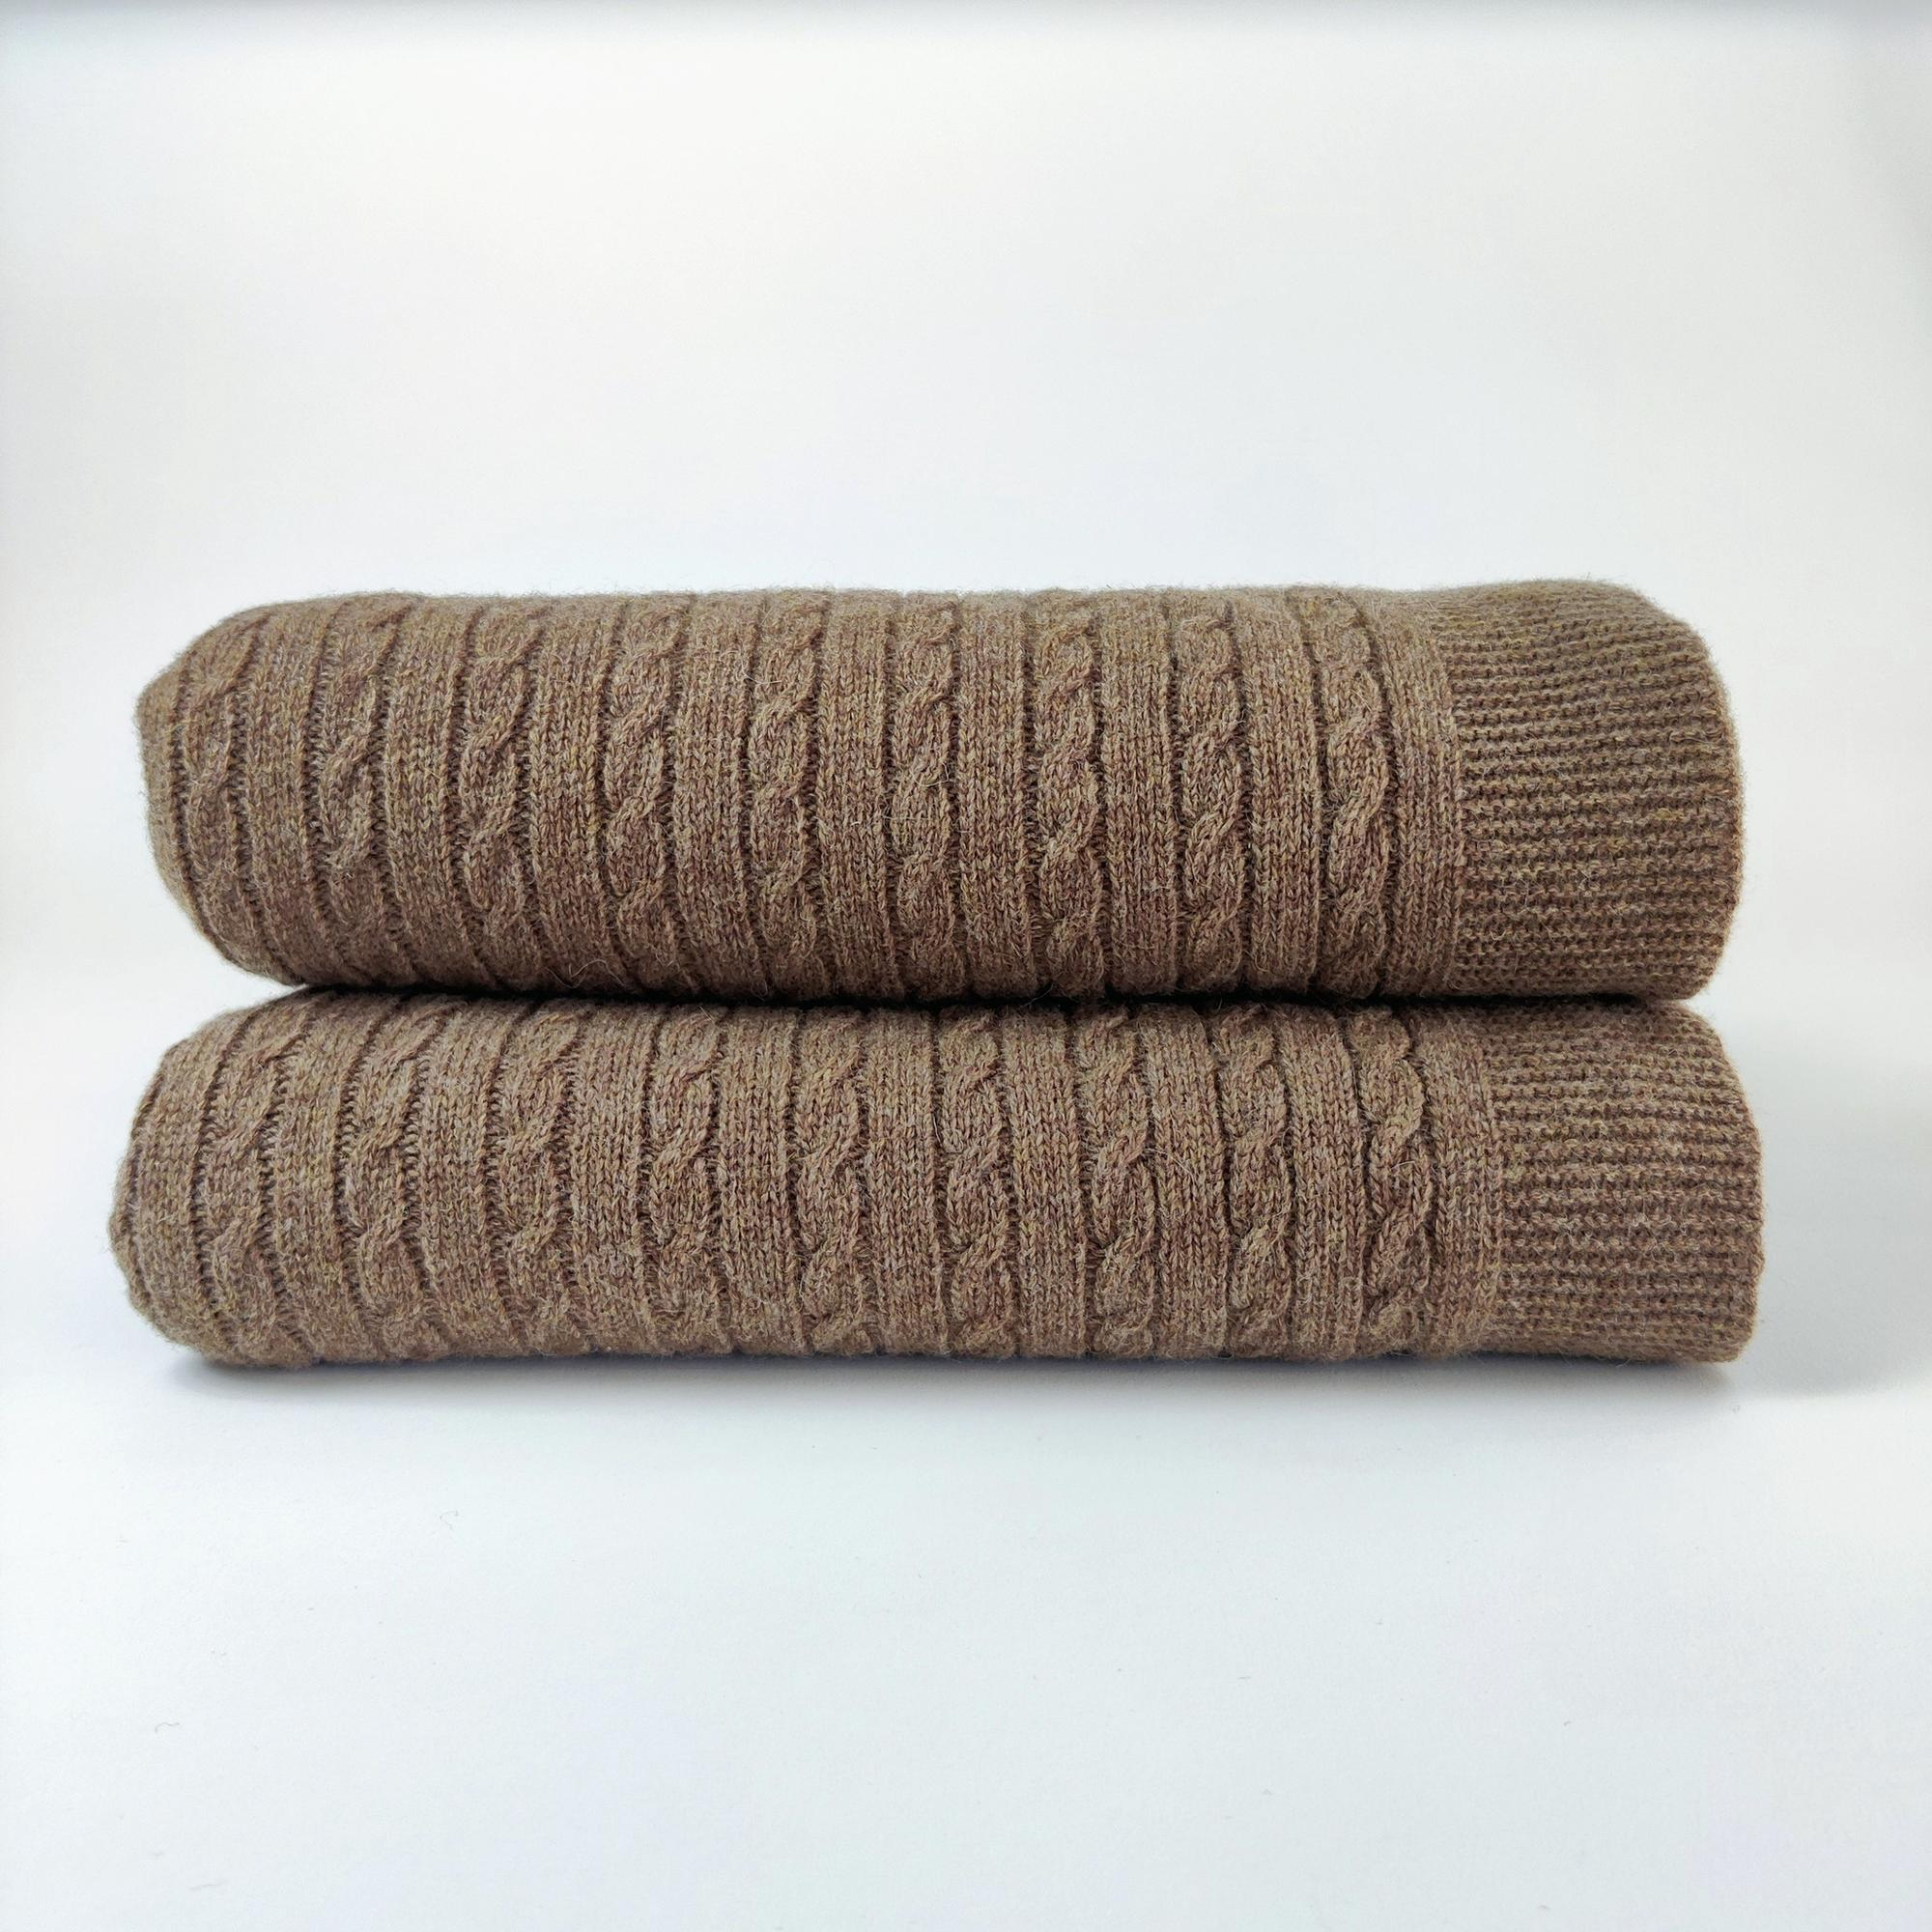 KOC RUSTIC CABLE KNIT - Resort Living